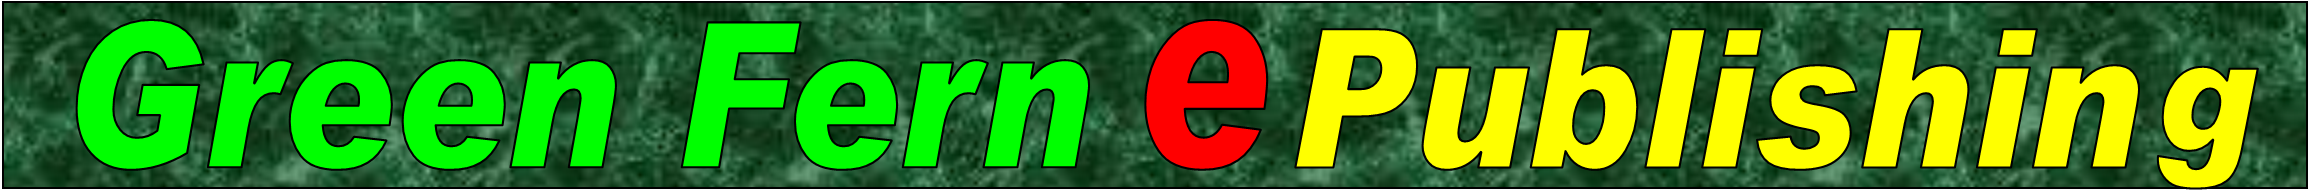 Green Fern ePublishing logo